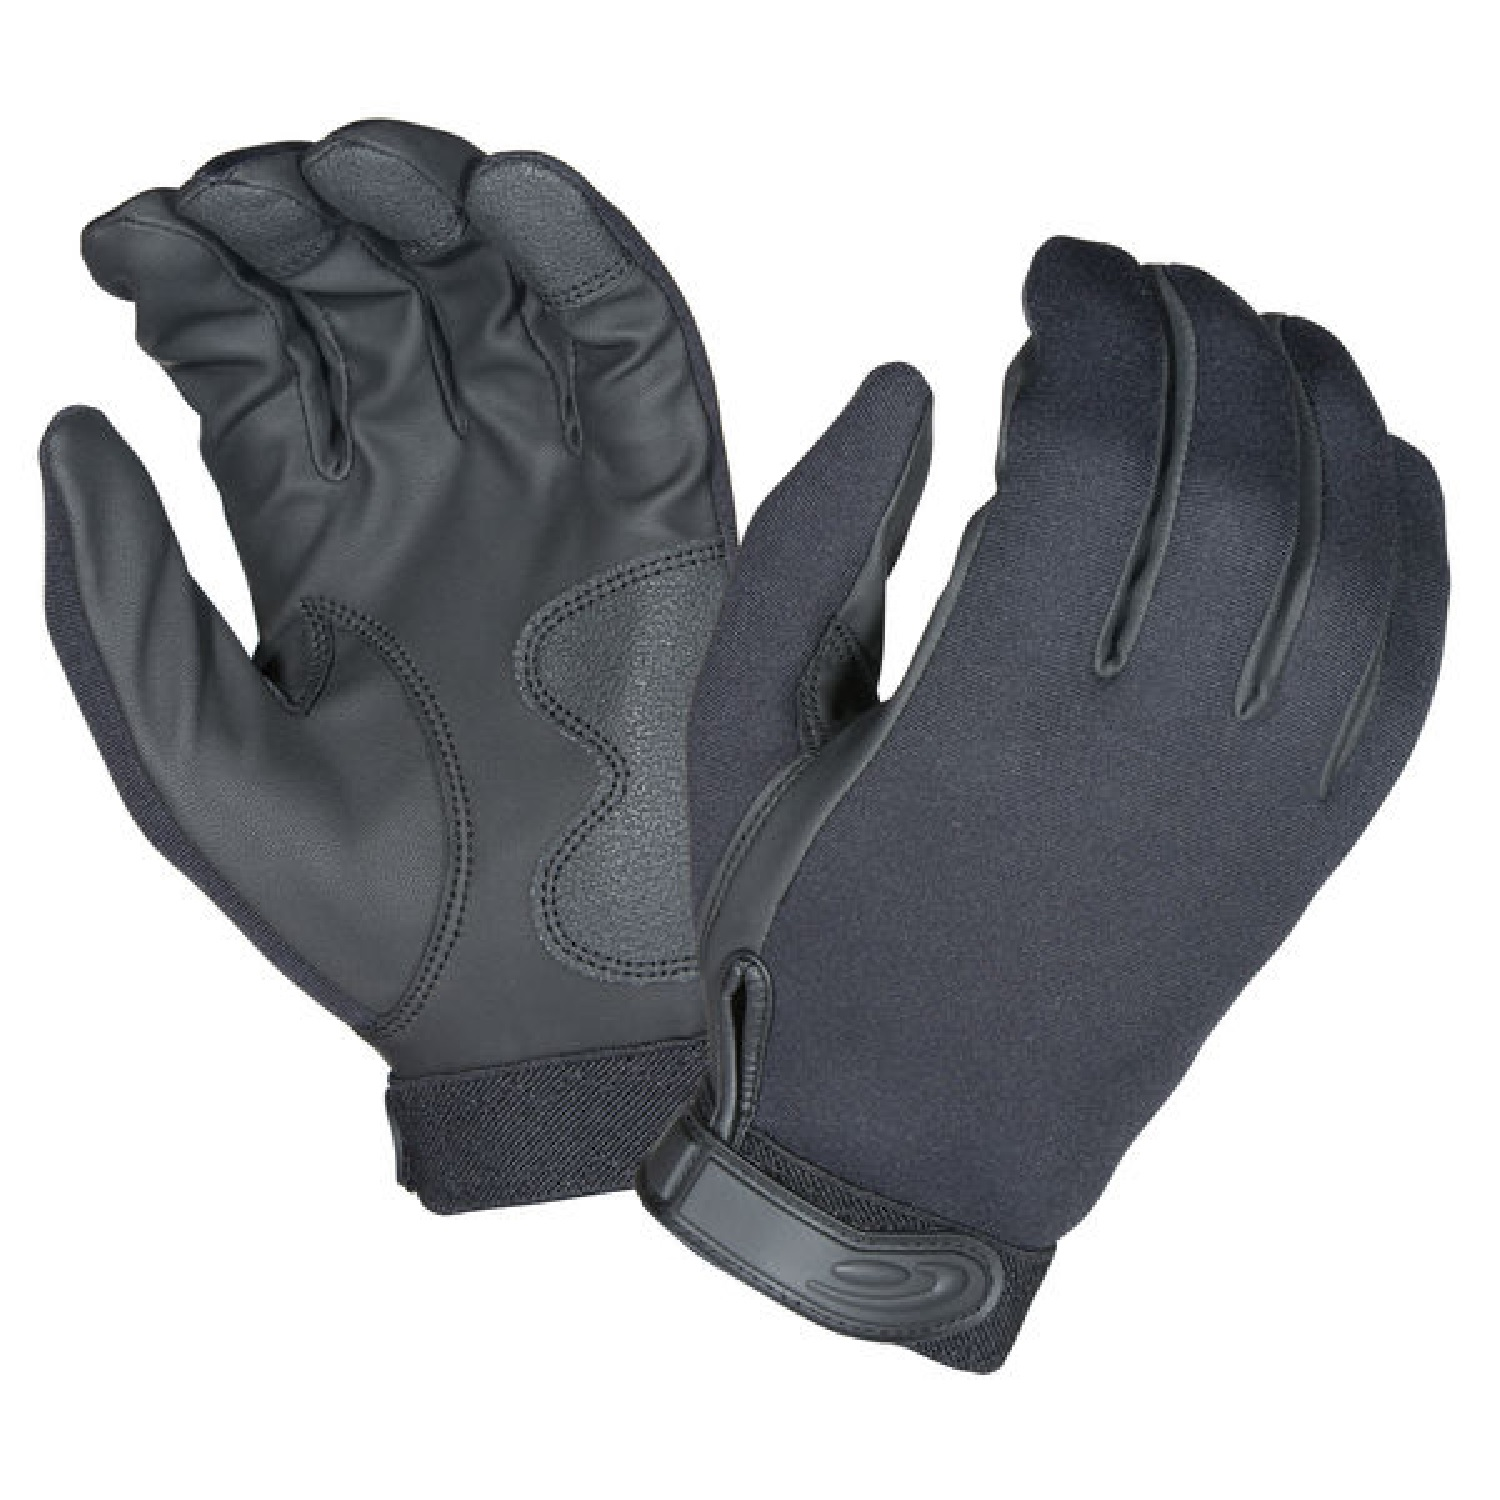 Hatch NS430 Specialist Glove Size Small